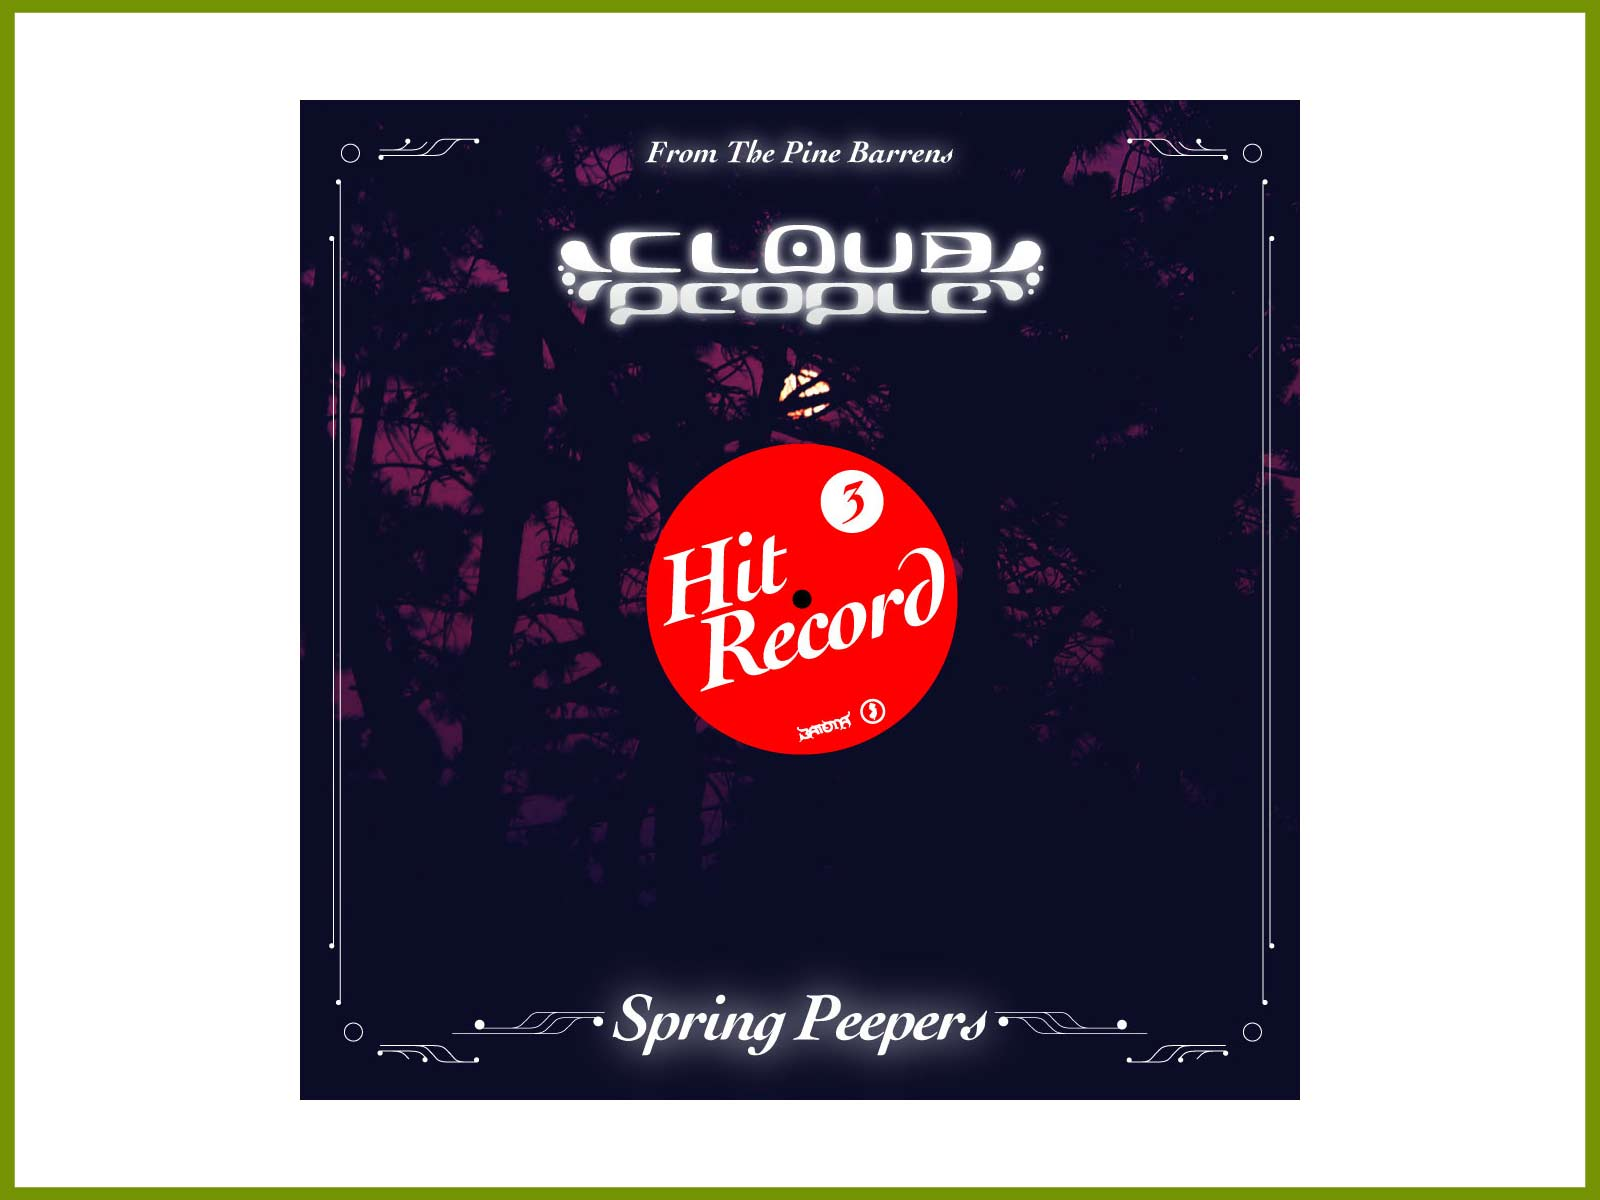 """Hear Cloud People's 3rd Hit Record field recording, """"Spring Peepers"""""""